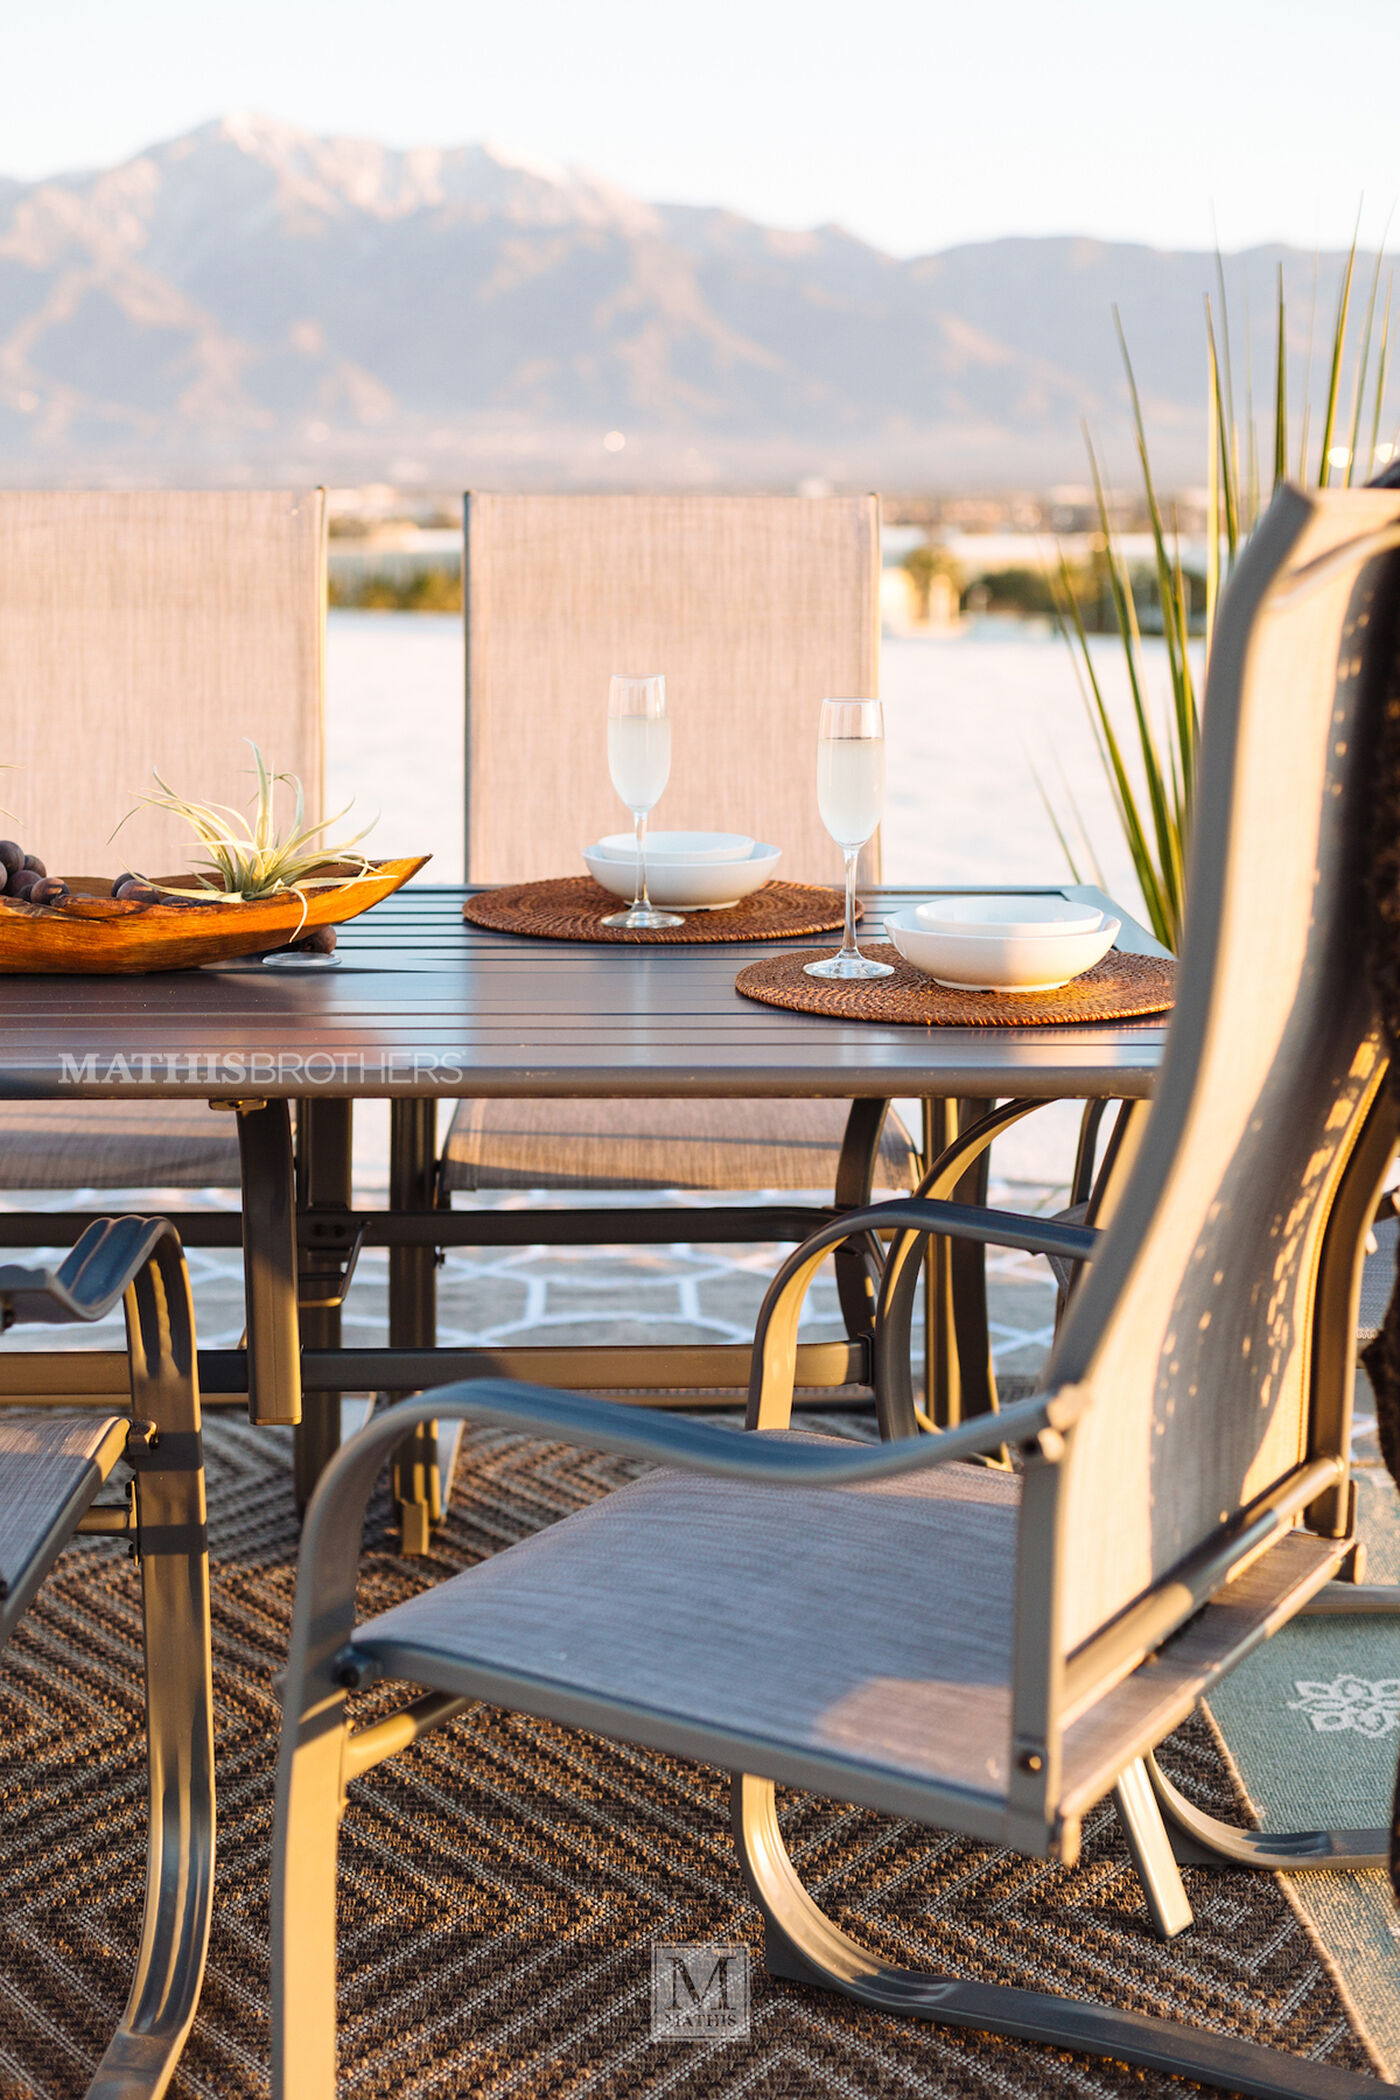 Mathis Brothers Patio Furniture world source paulinus patio dining set | mathis brothers furniture